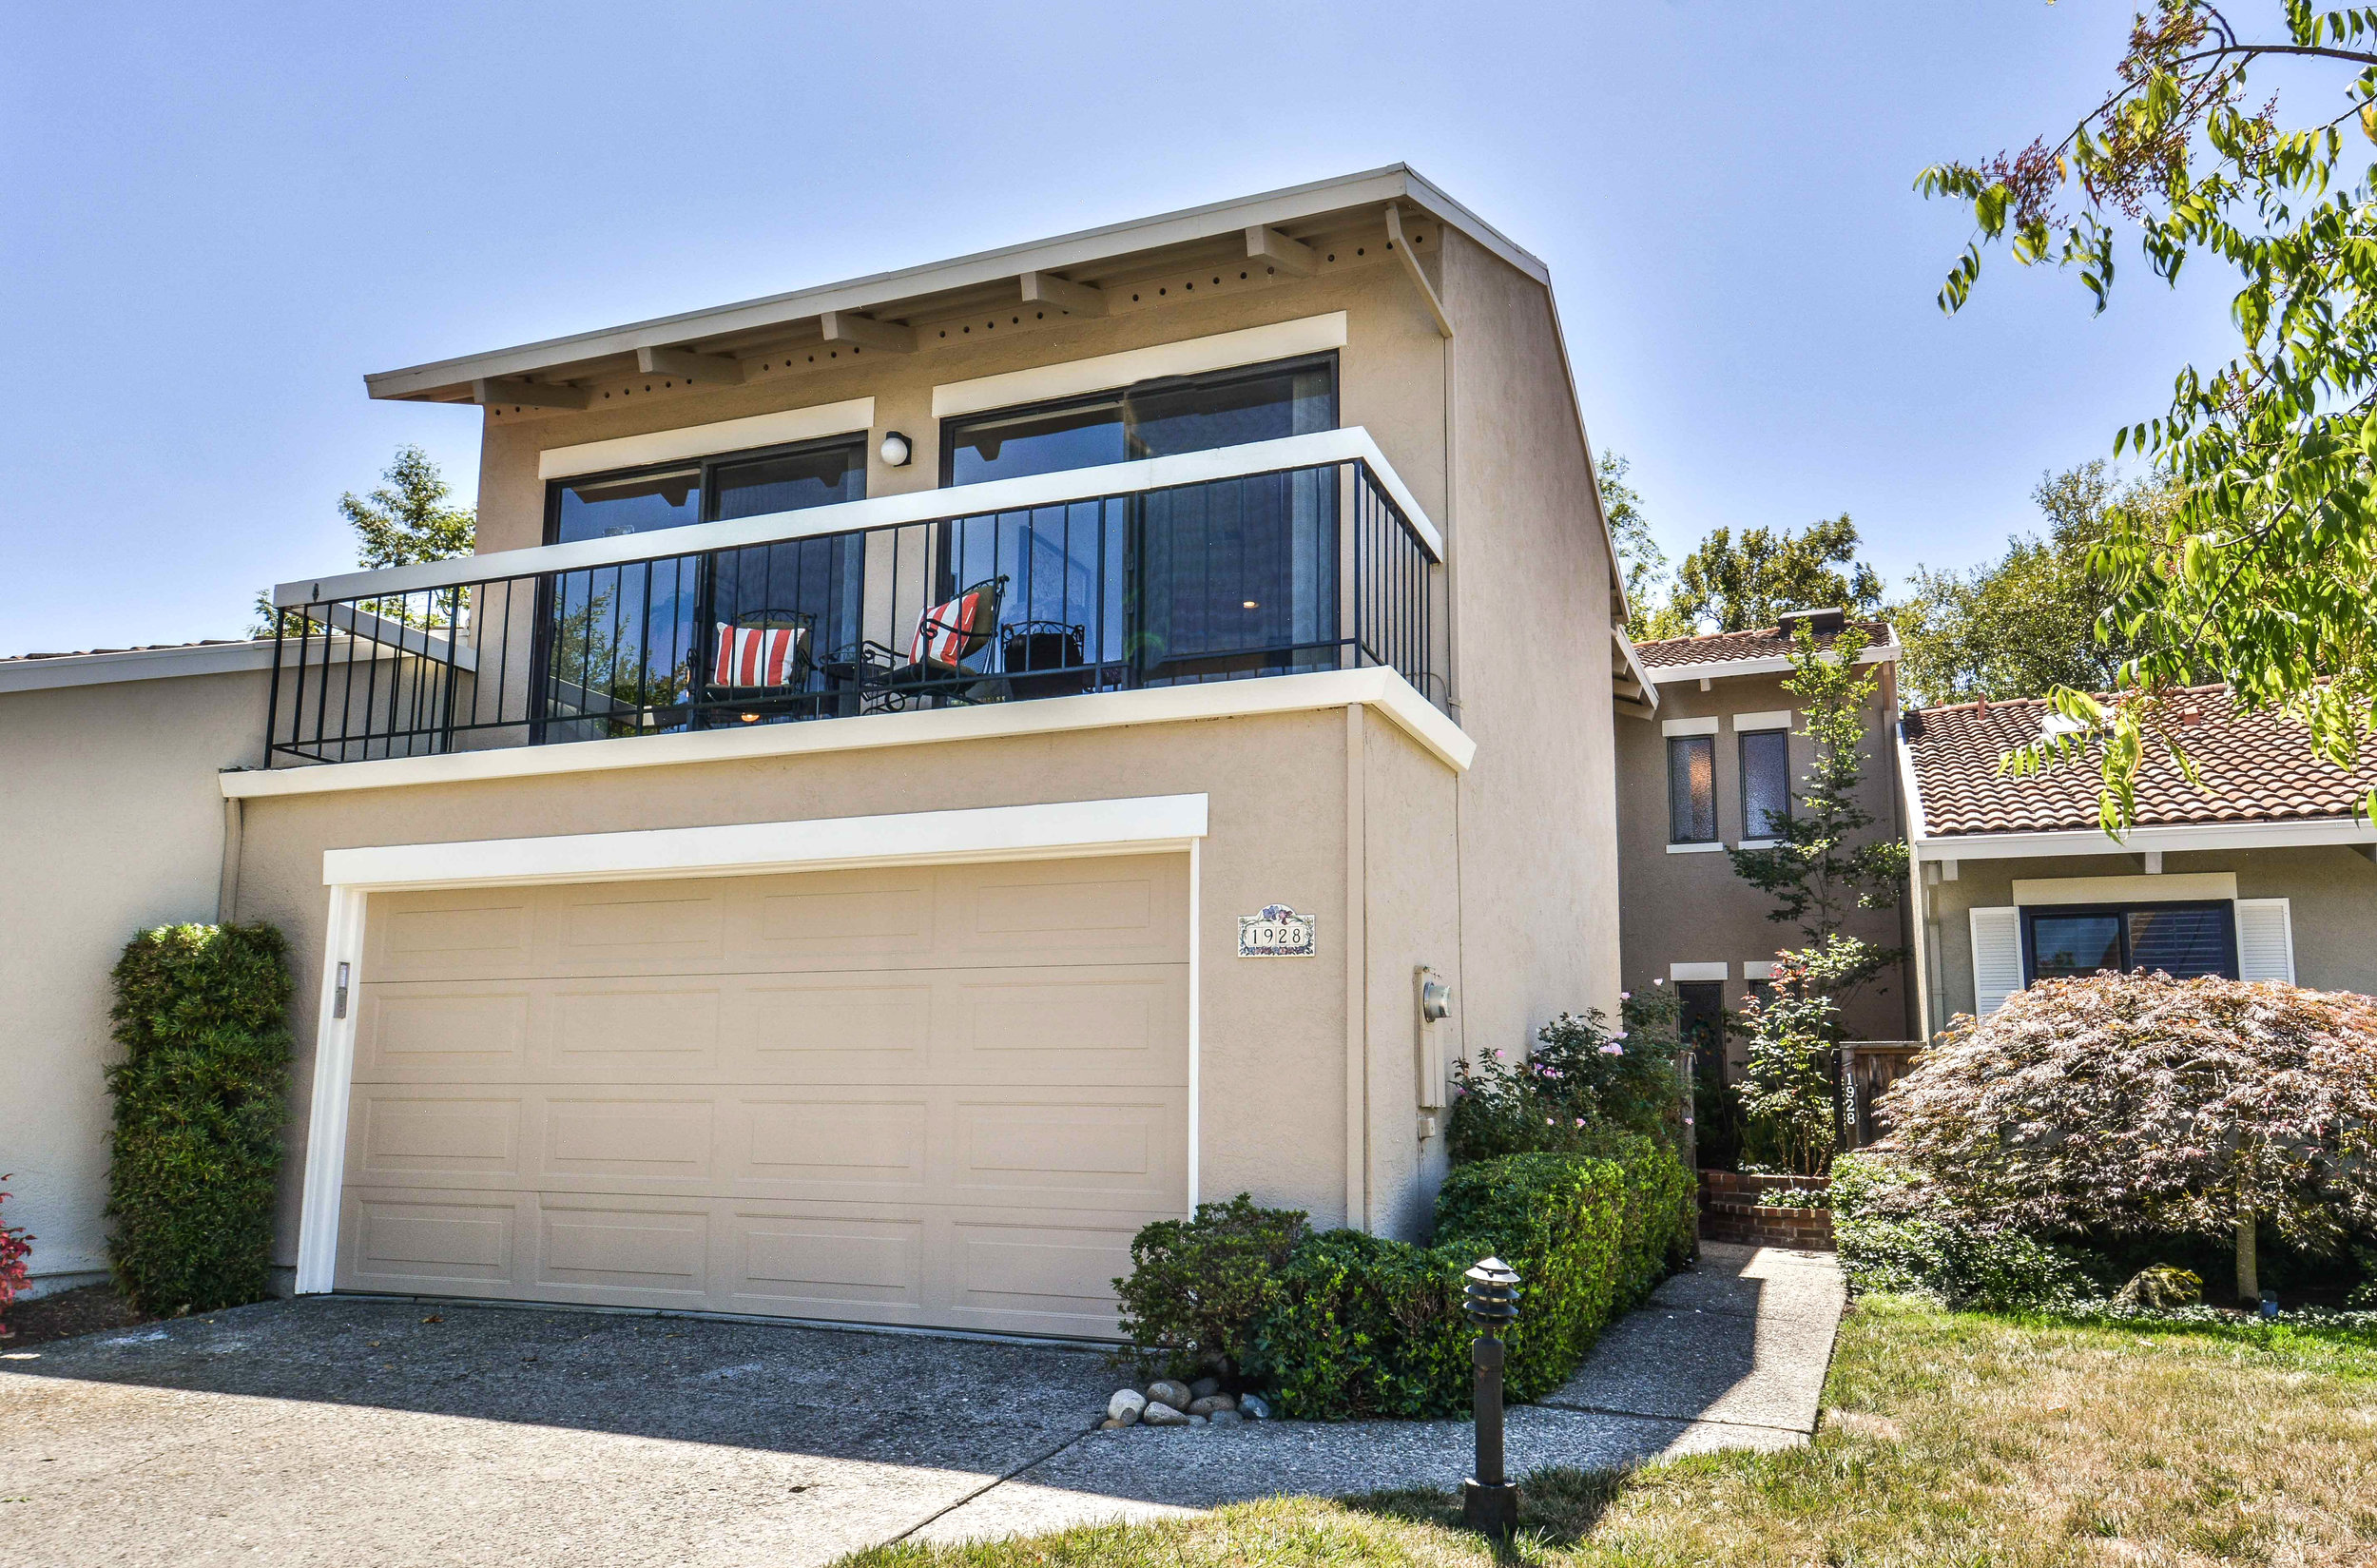 1928 st. andrews drive, moraga, ca  listed: $850,000 sold: $870,000 represented seller